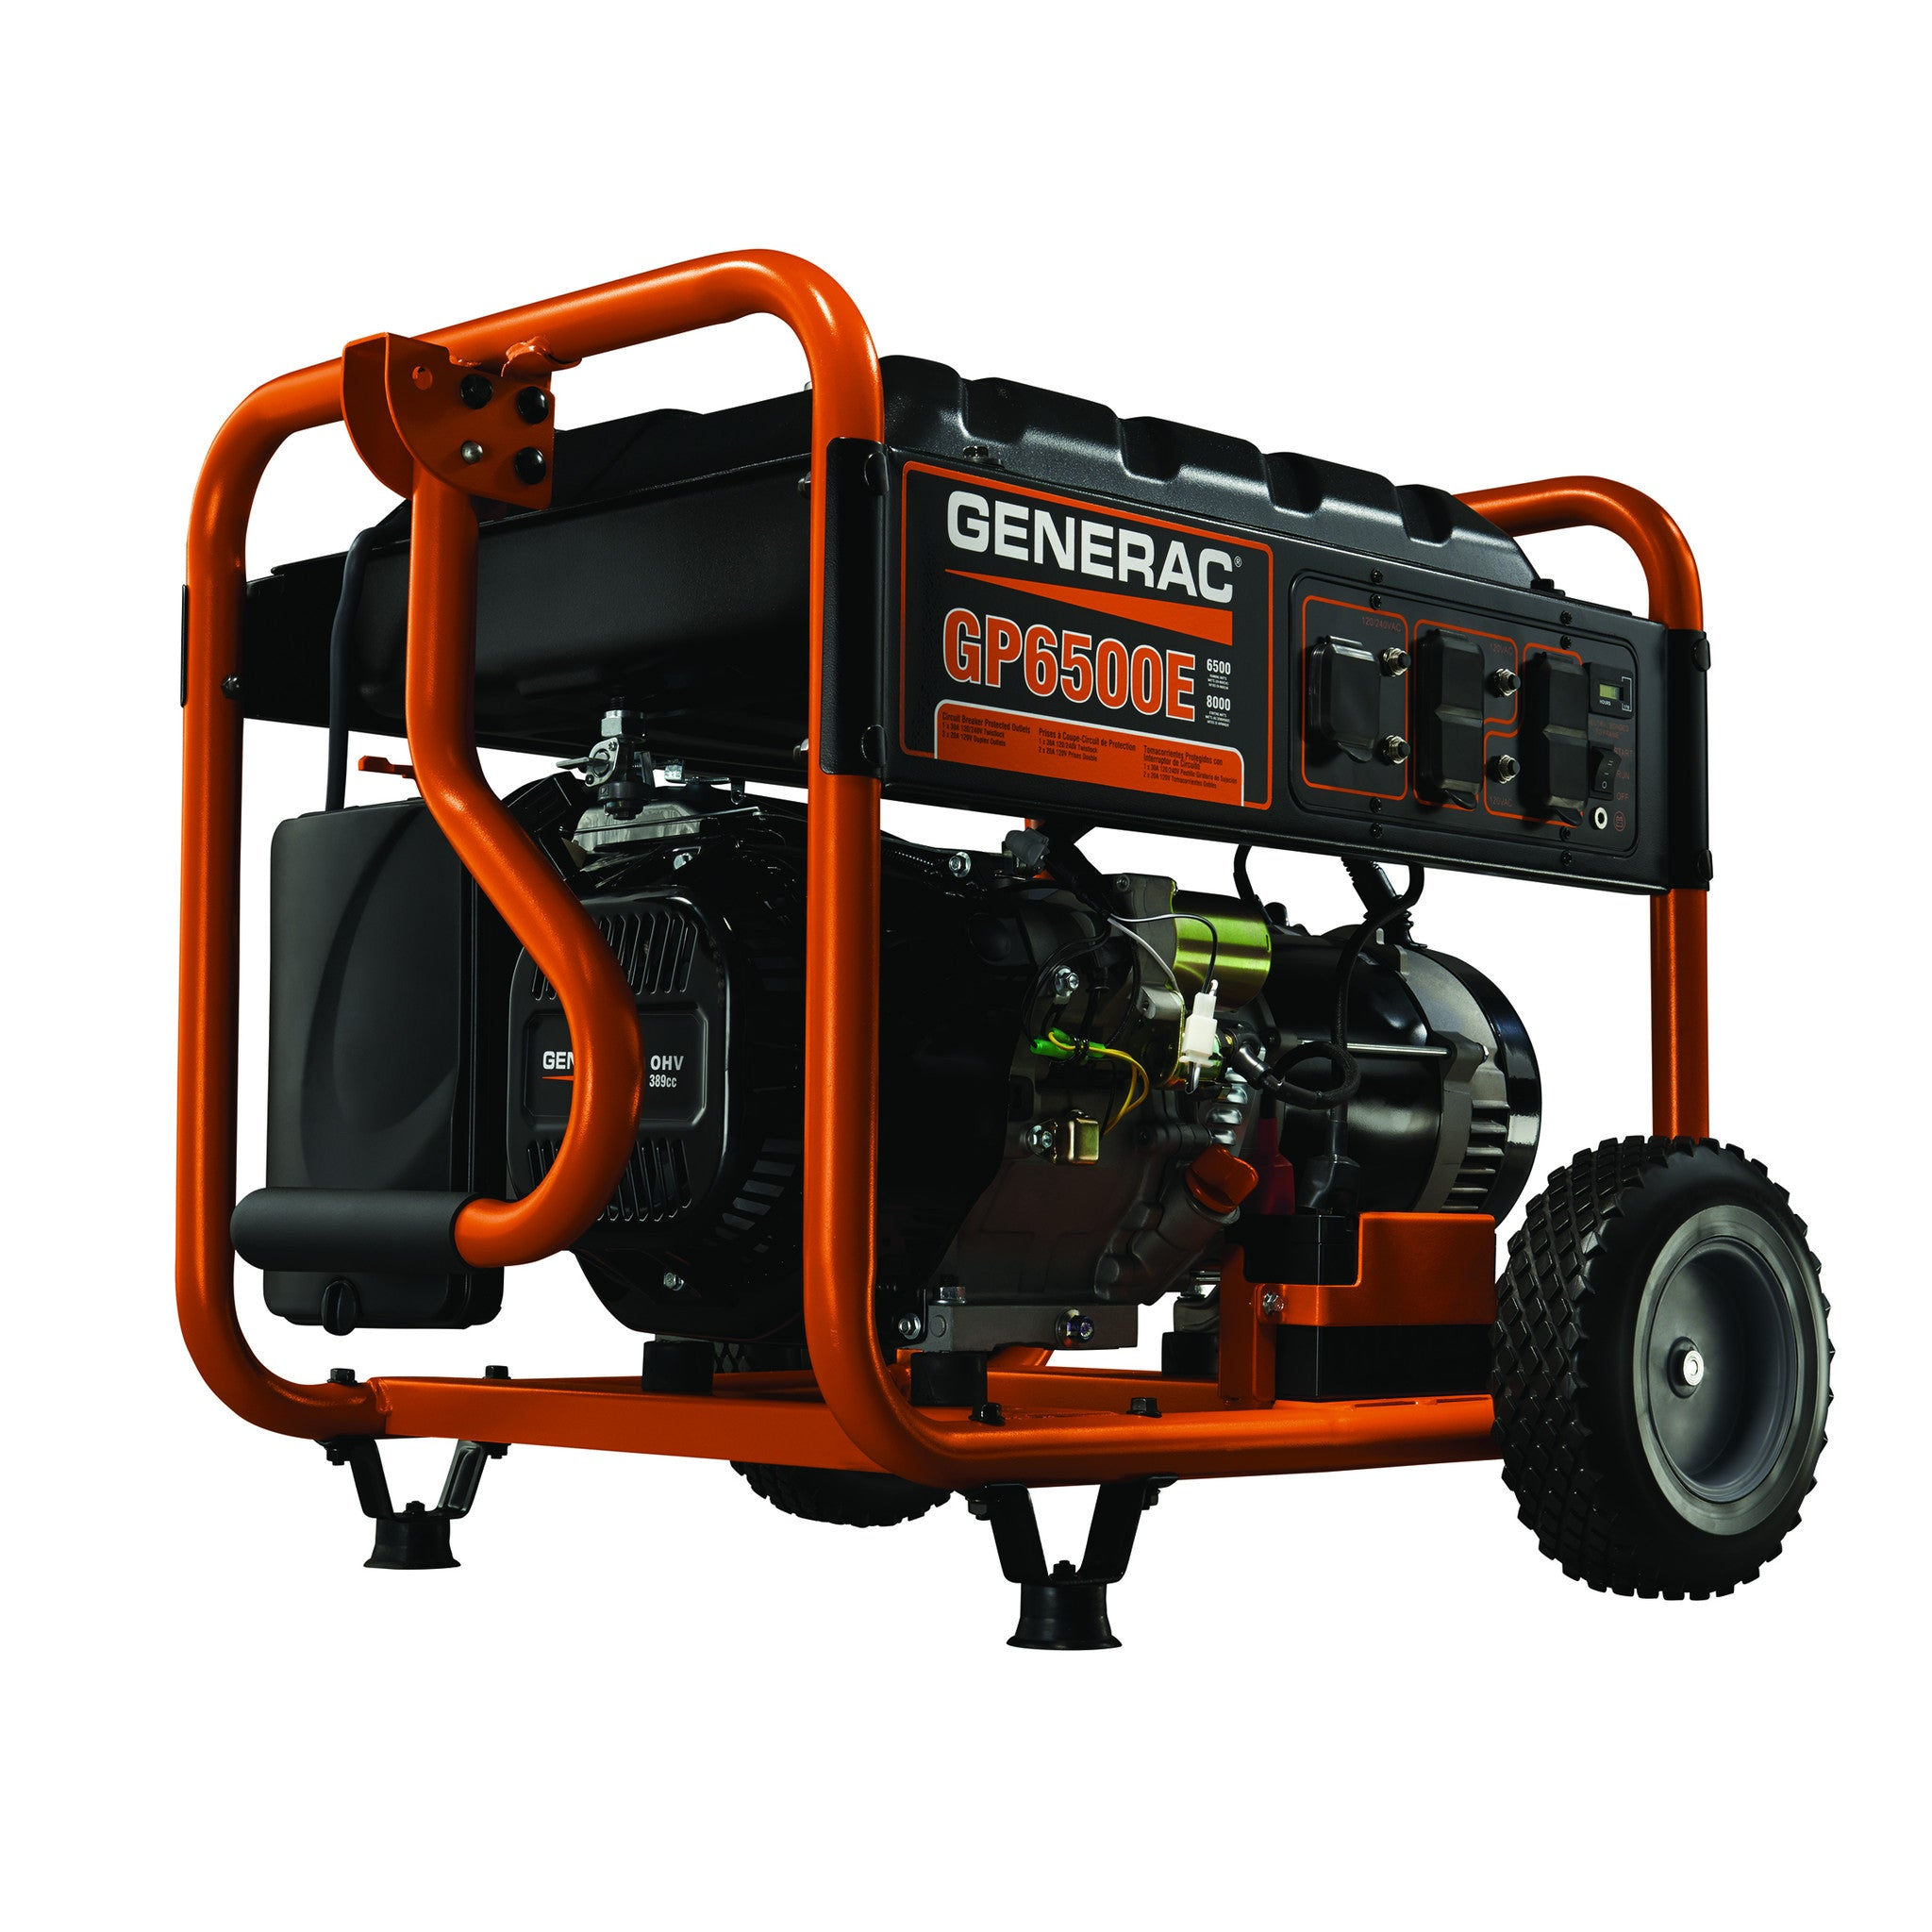 Generac 5941 GP6500E 6500 Watt Electric Start Portable Gasoline